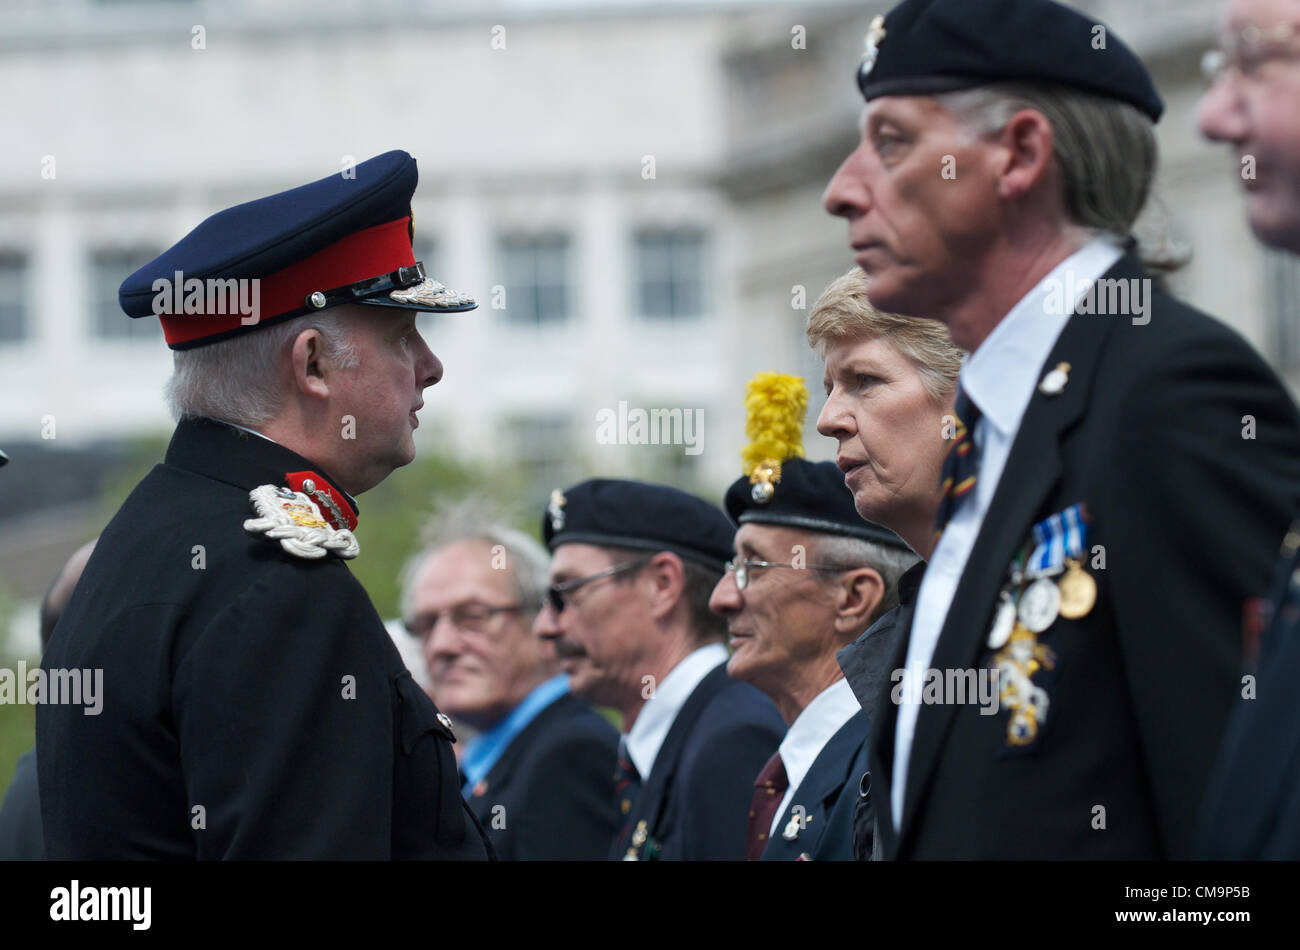 Manchester, UK. 30-06-2012 - The Lord Lieutenant speaks toa a female veteran at the Armed Forces Day ceremony, Piccadilly, - Stock Image